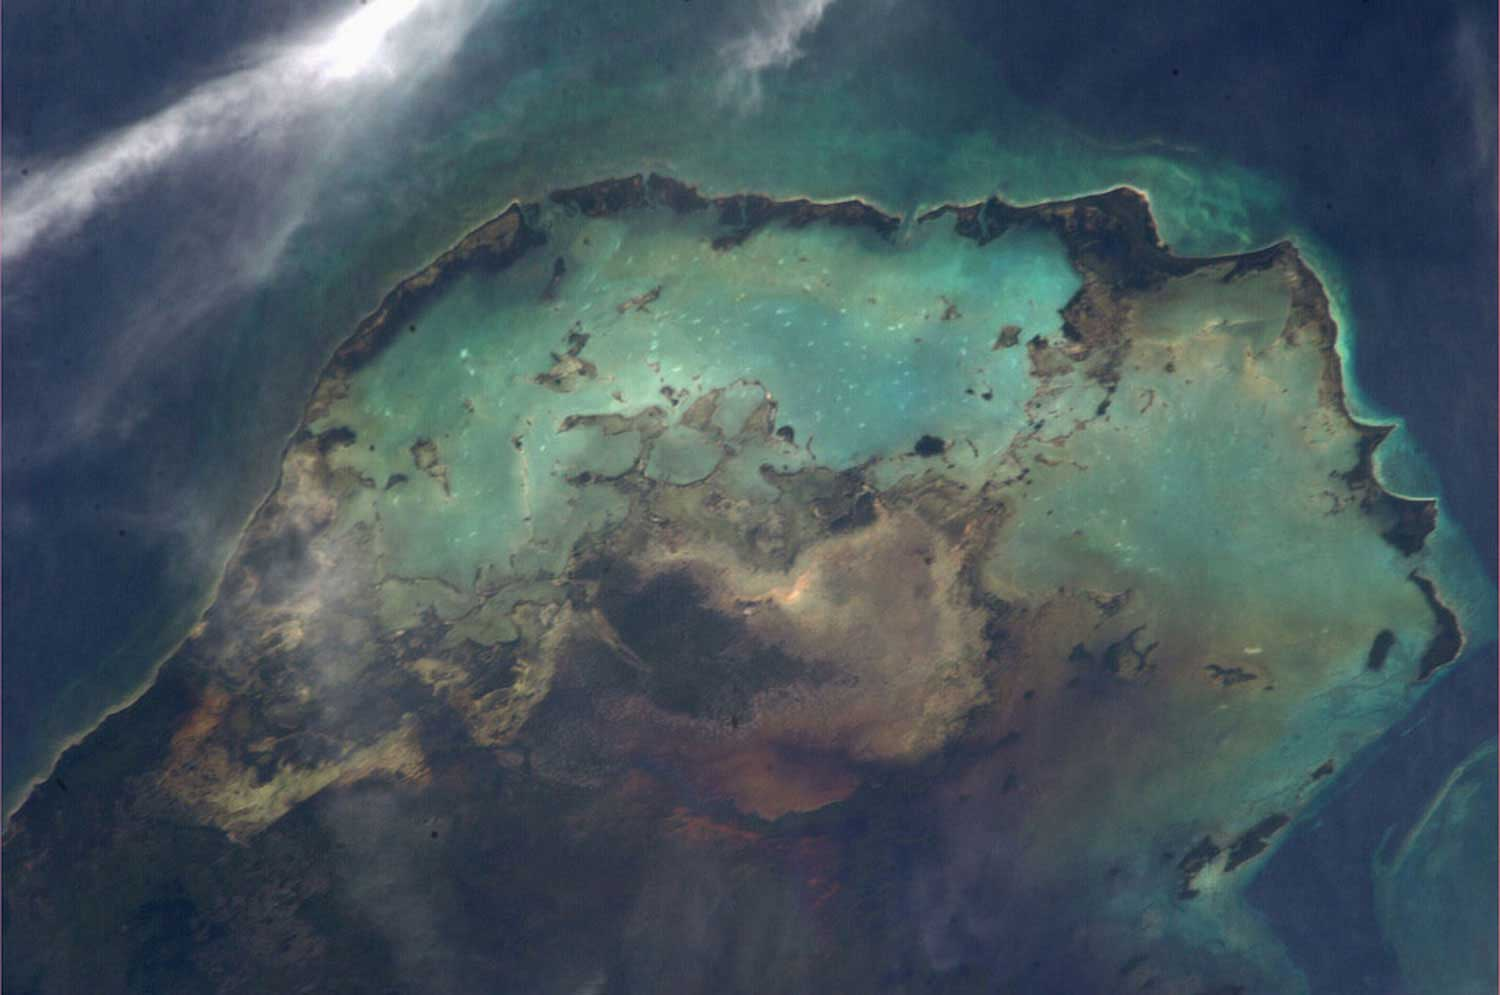 The Caribbean Sea, as seen from the international space station on Aug. 13, 2013.